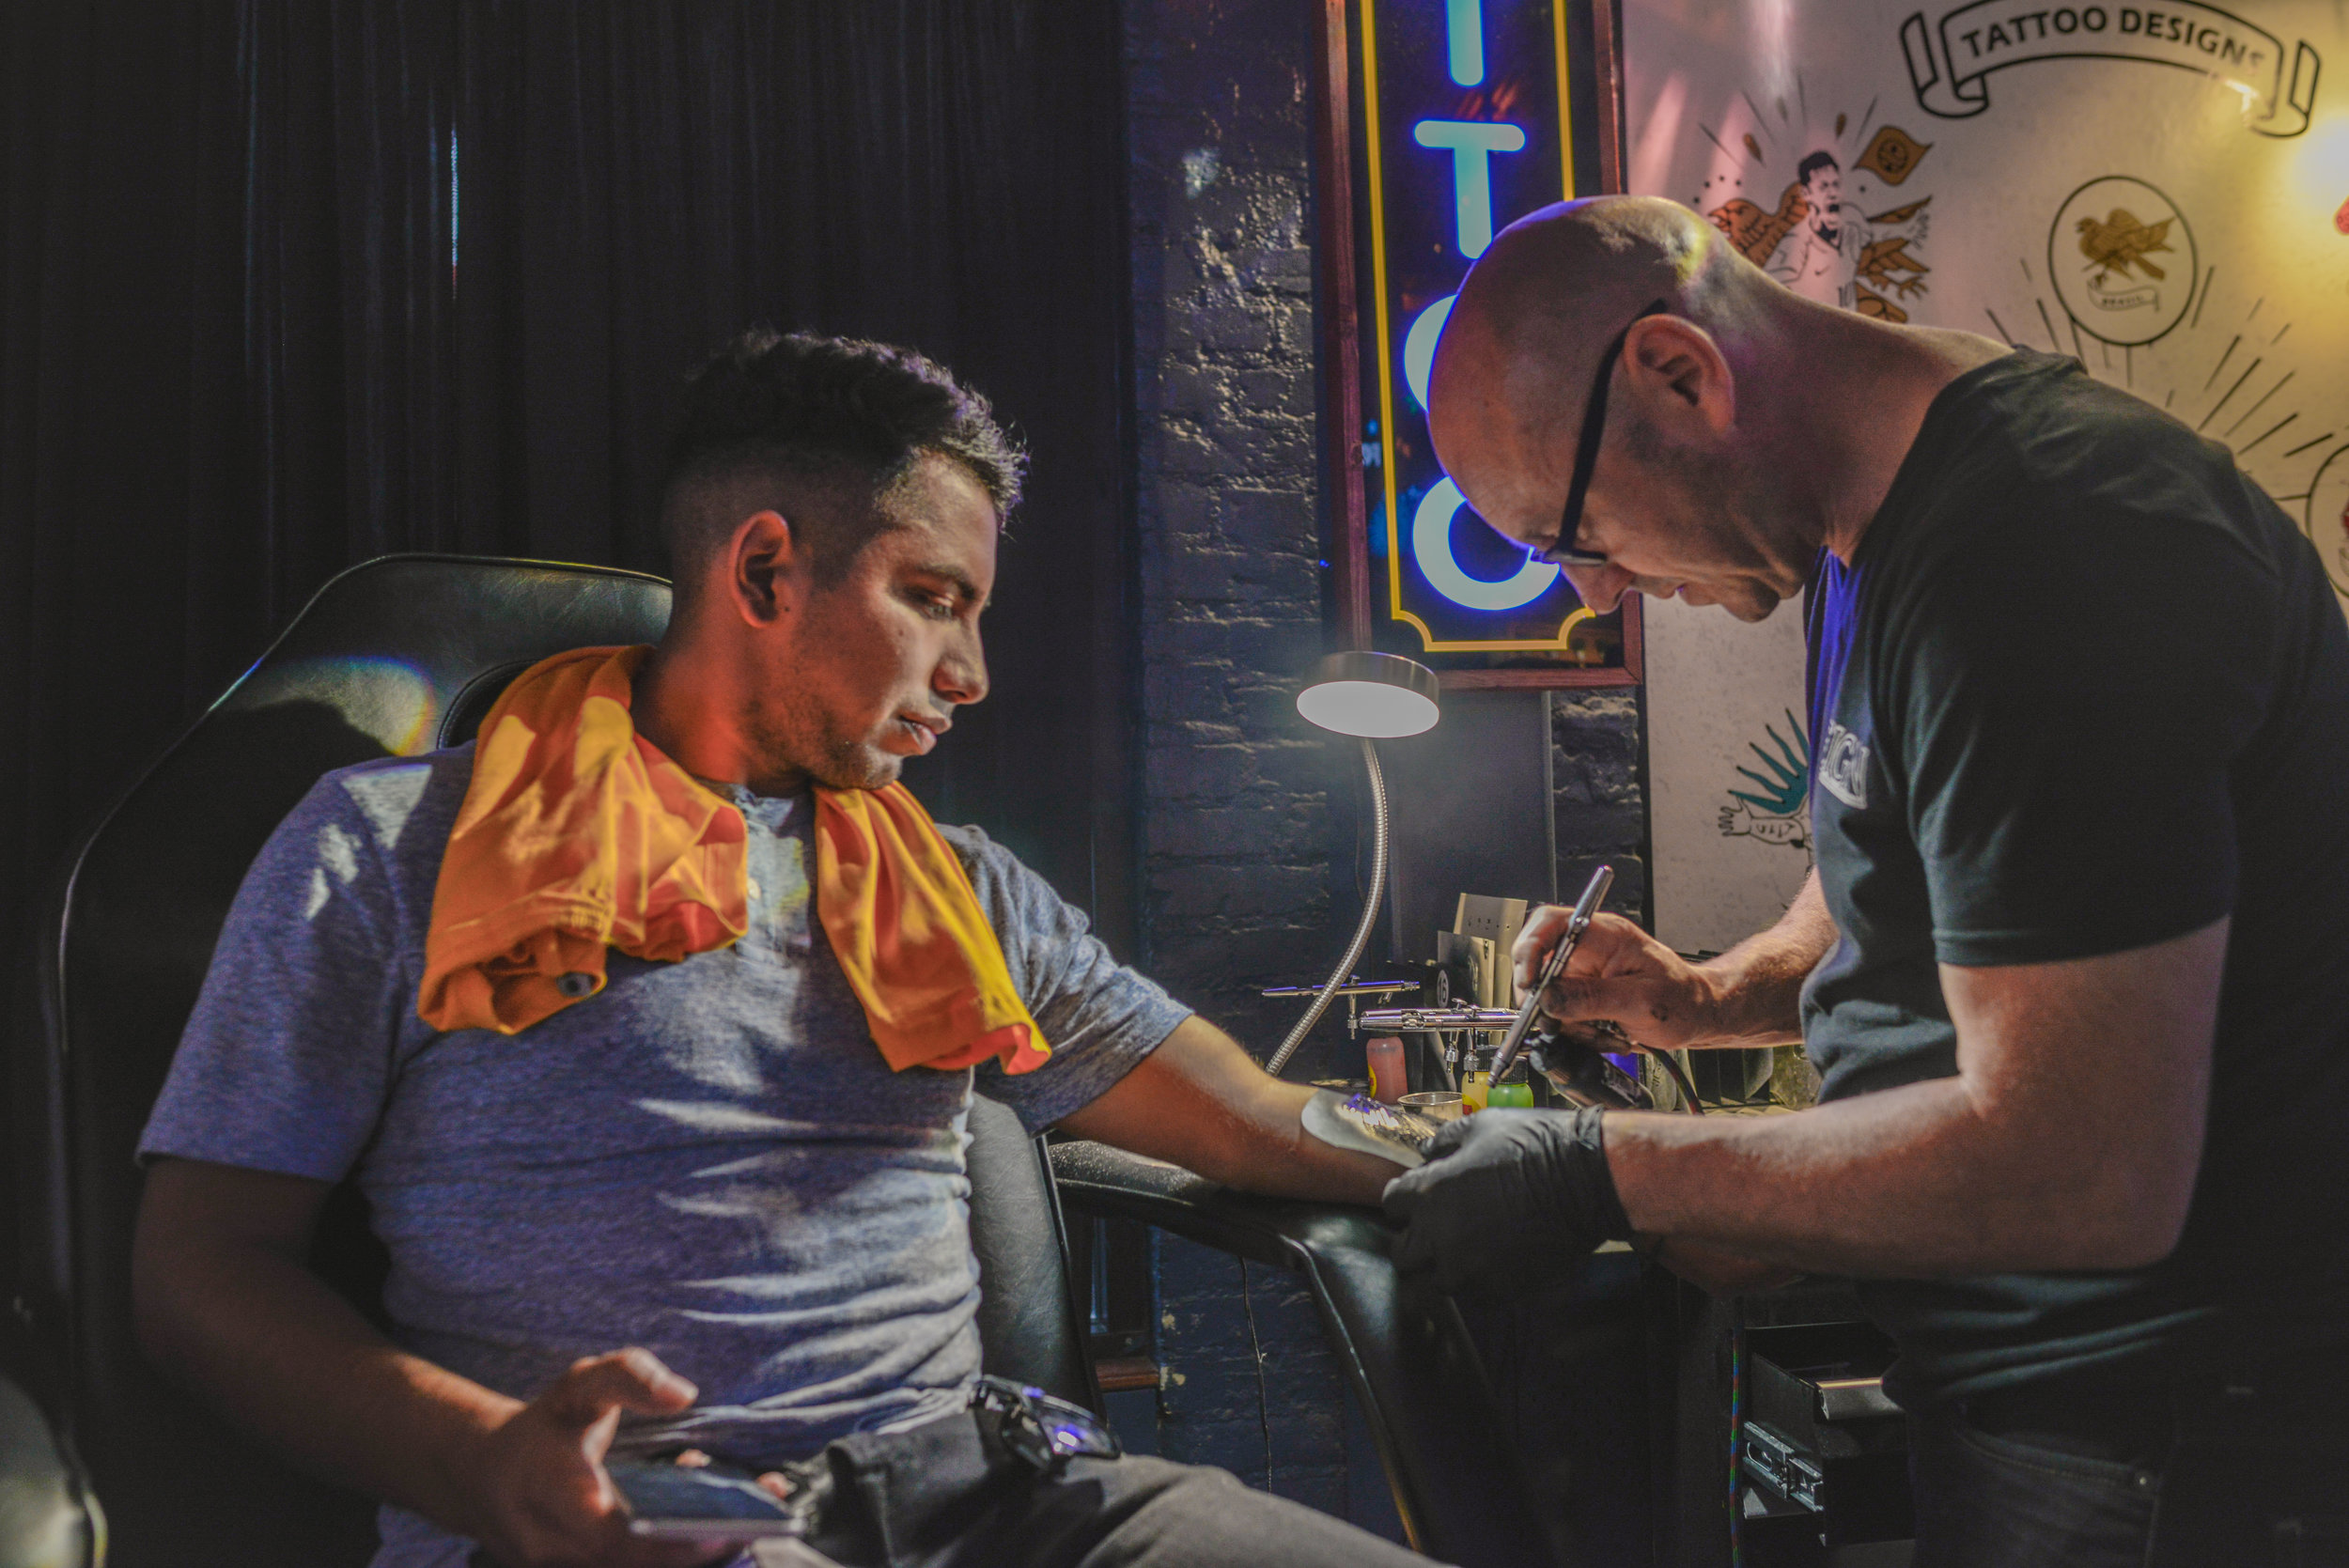 Temporary airbrush tattoos being applied at the Fox Sports Bar